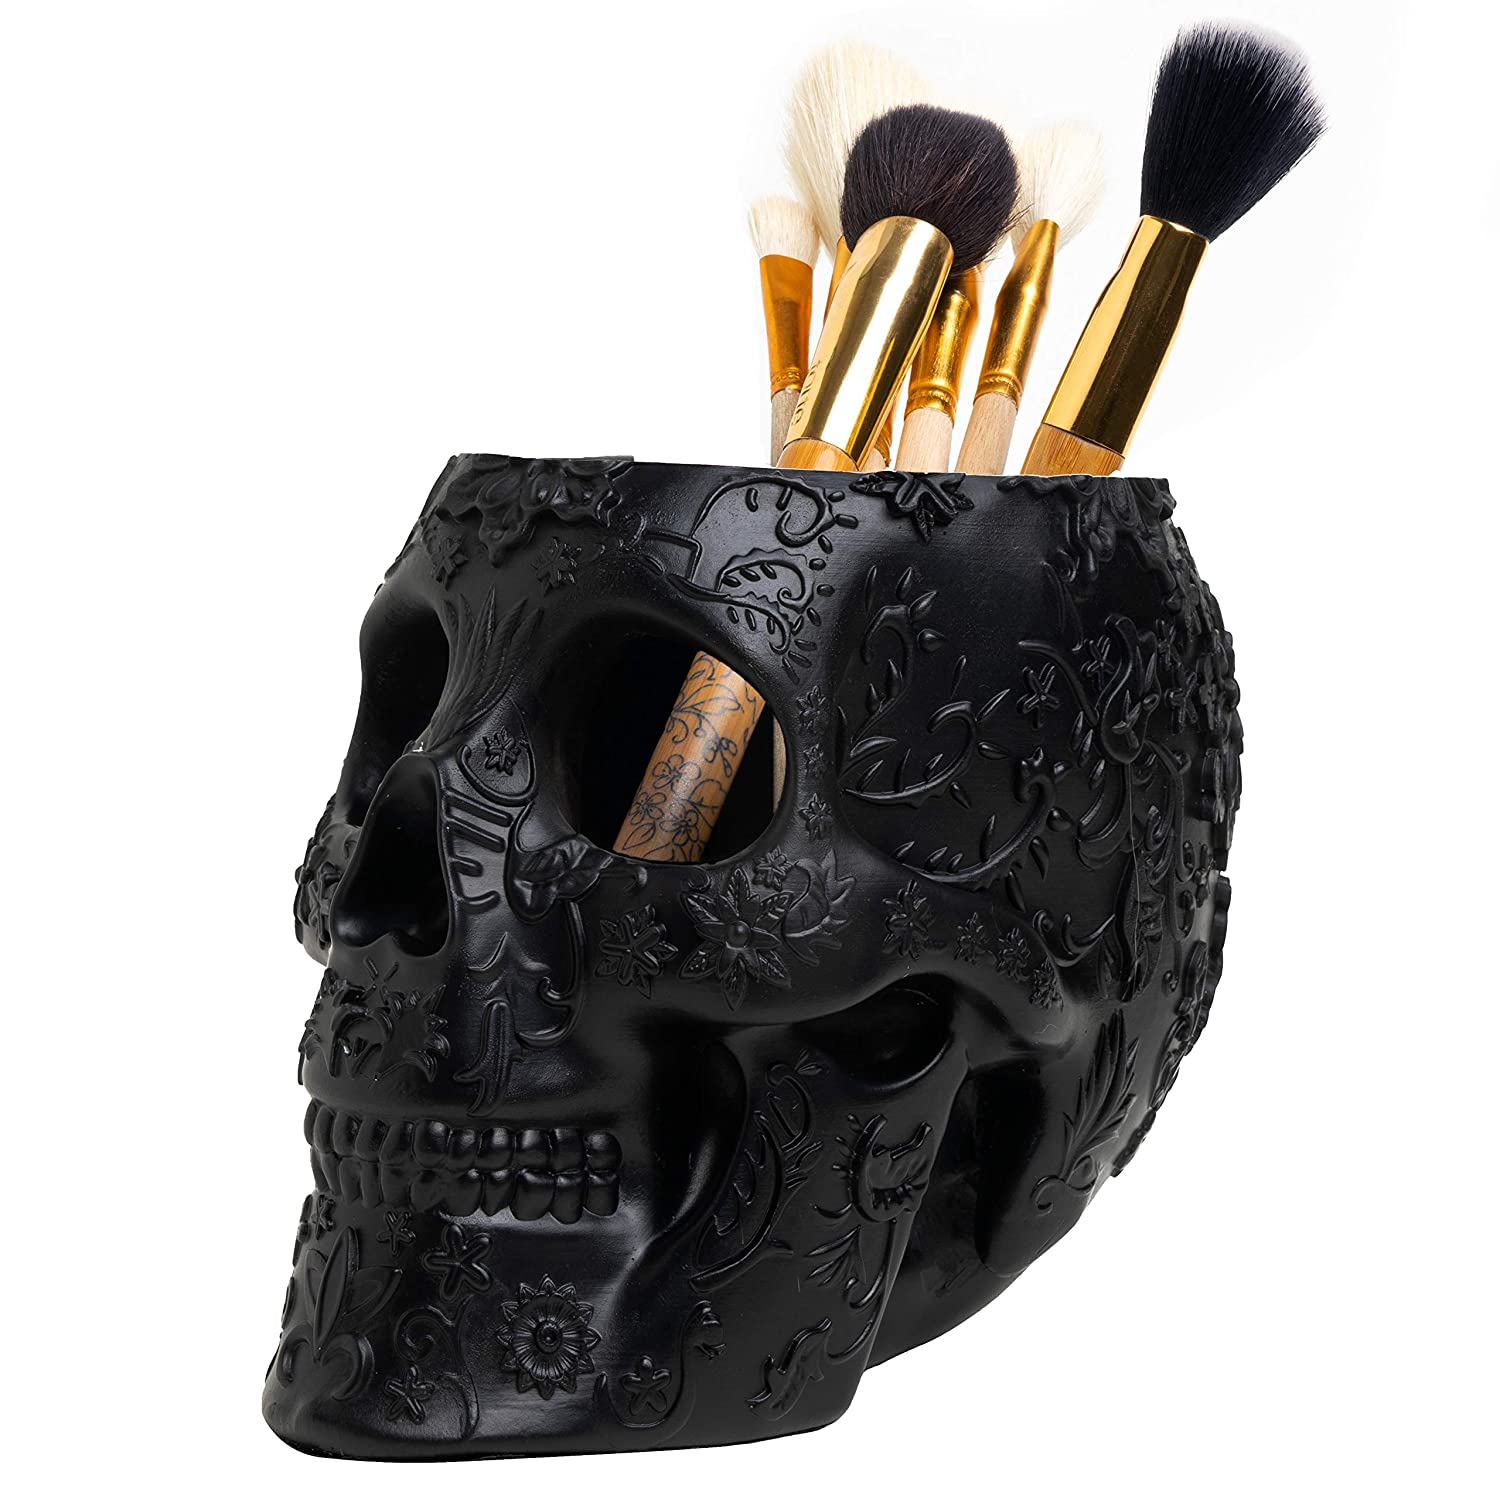 Skull Makeup Brush Holder Extra Large, Strong Resin Extra Large By The Wine Savant